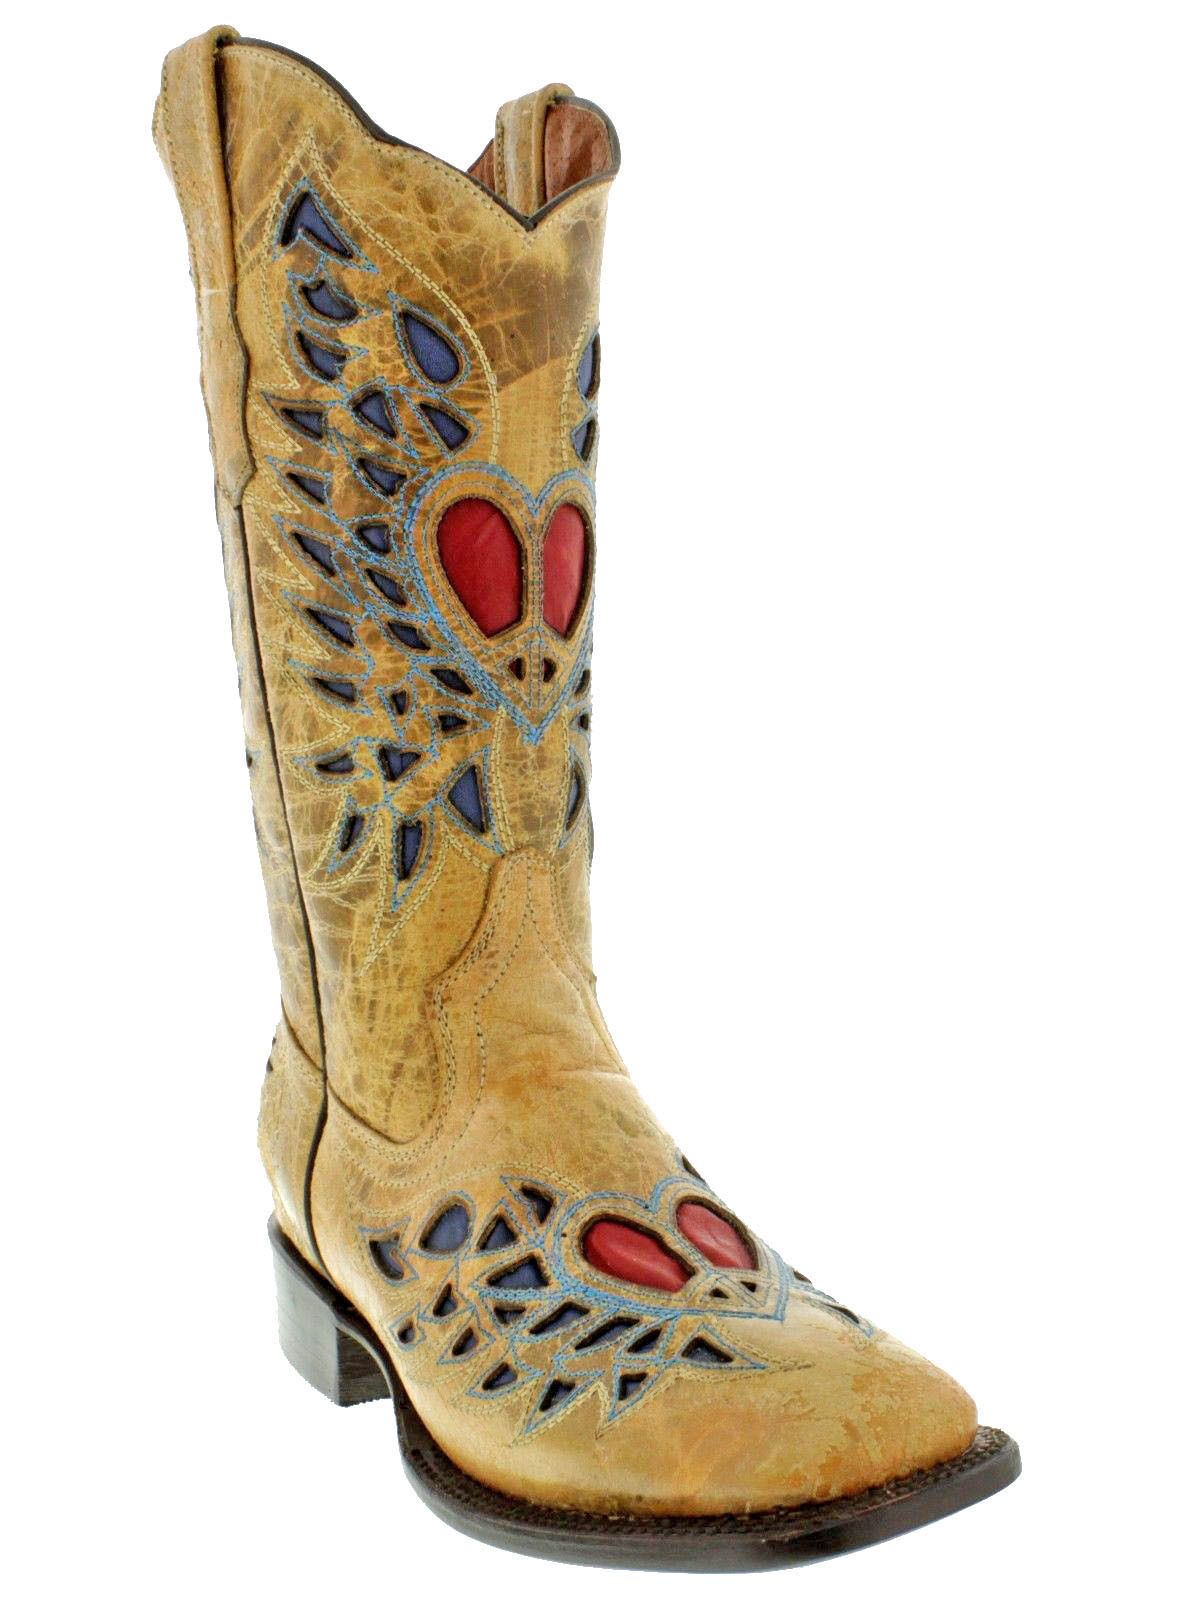 Damens Heart Stiefel Wings Sand Inlay Cowboy Stiefel Heart Distressed  Leder Western Wear 52aa3d